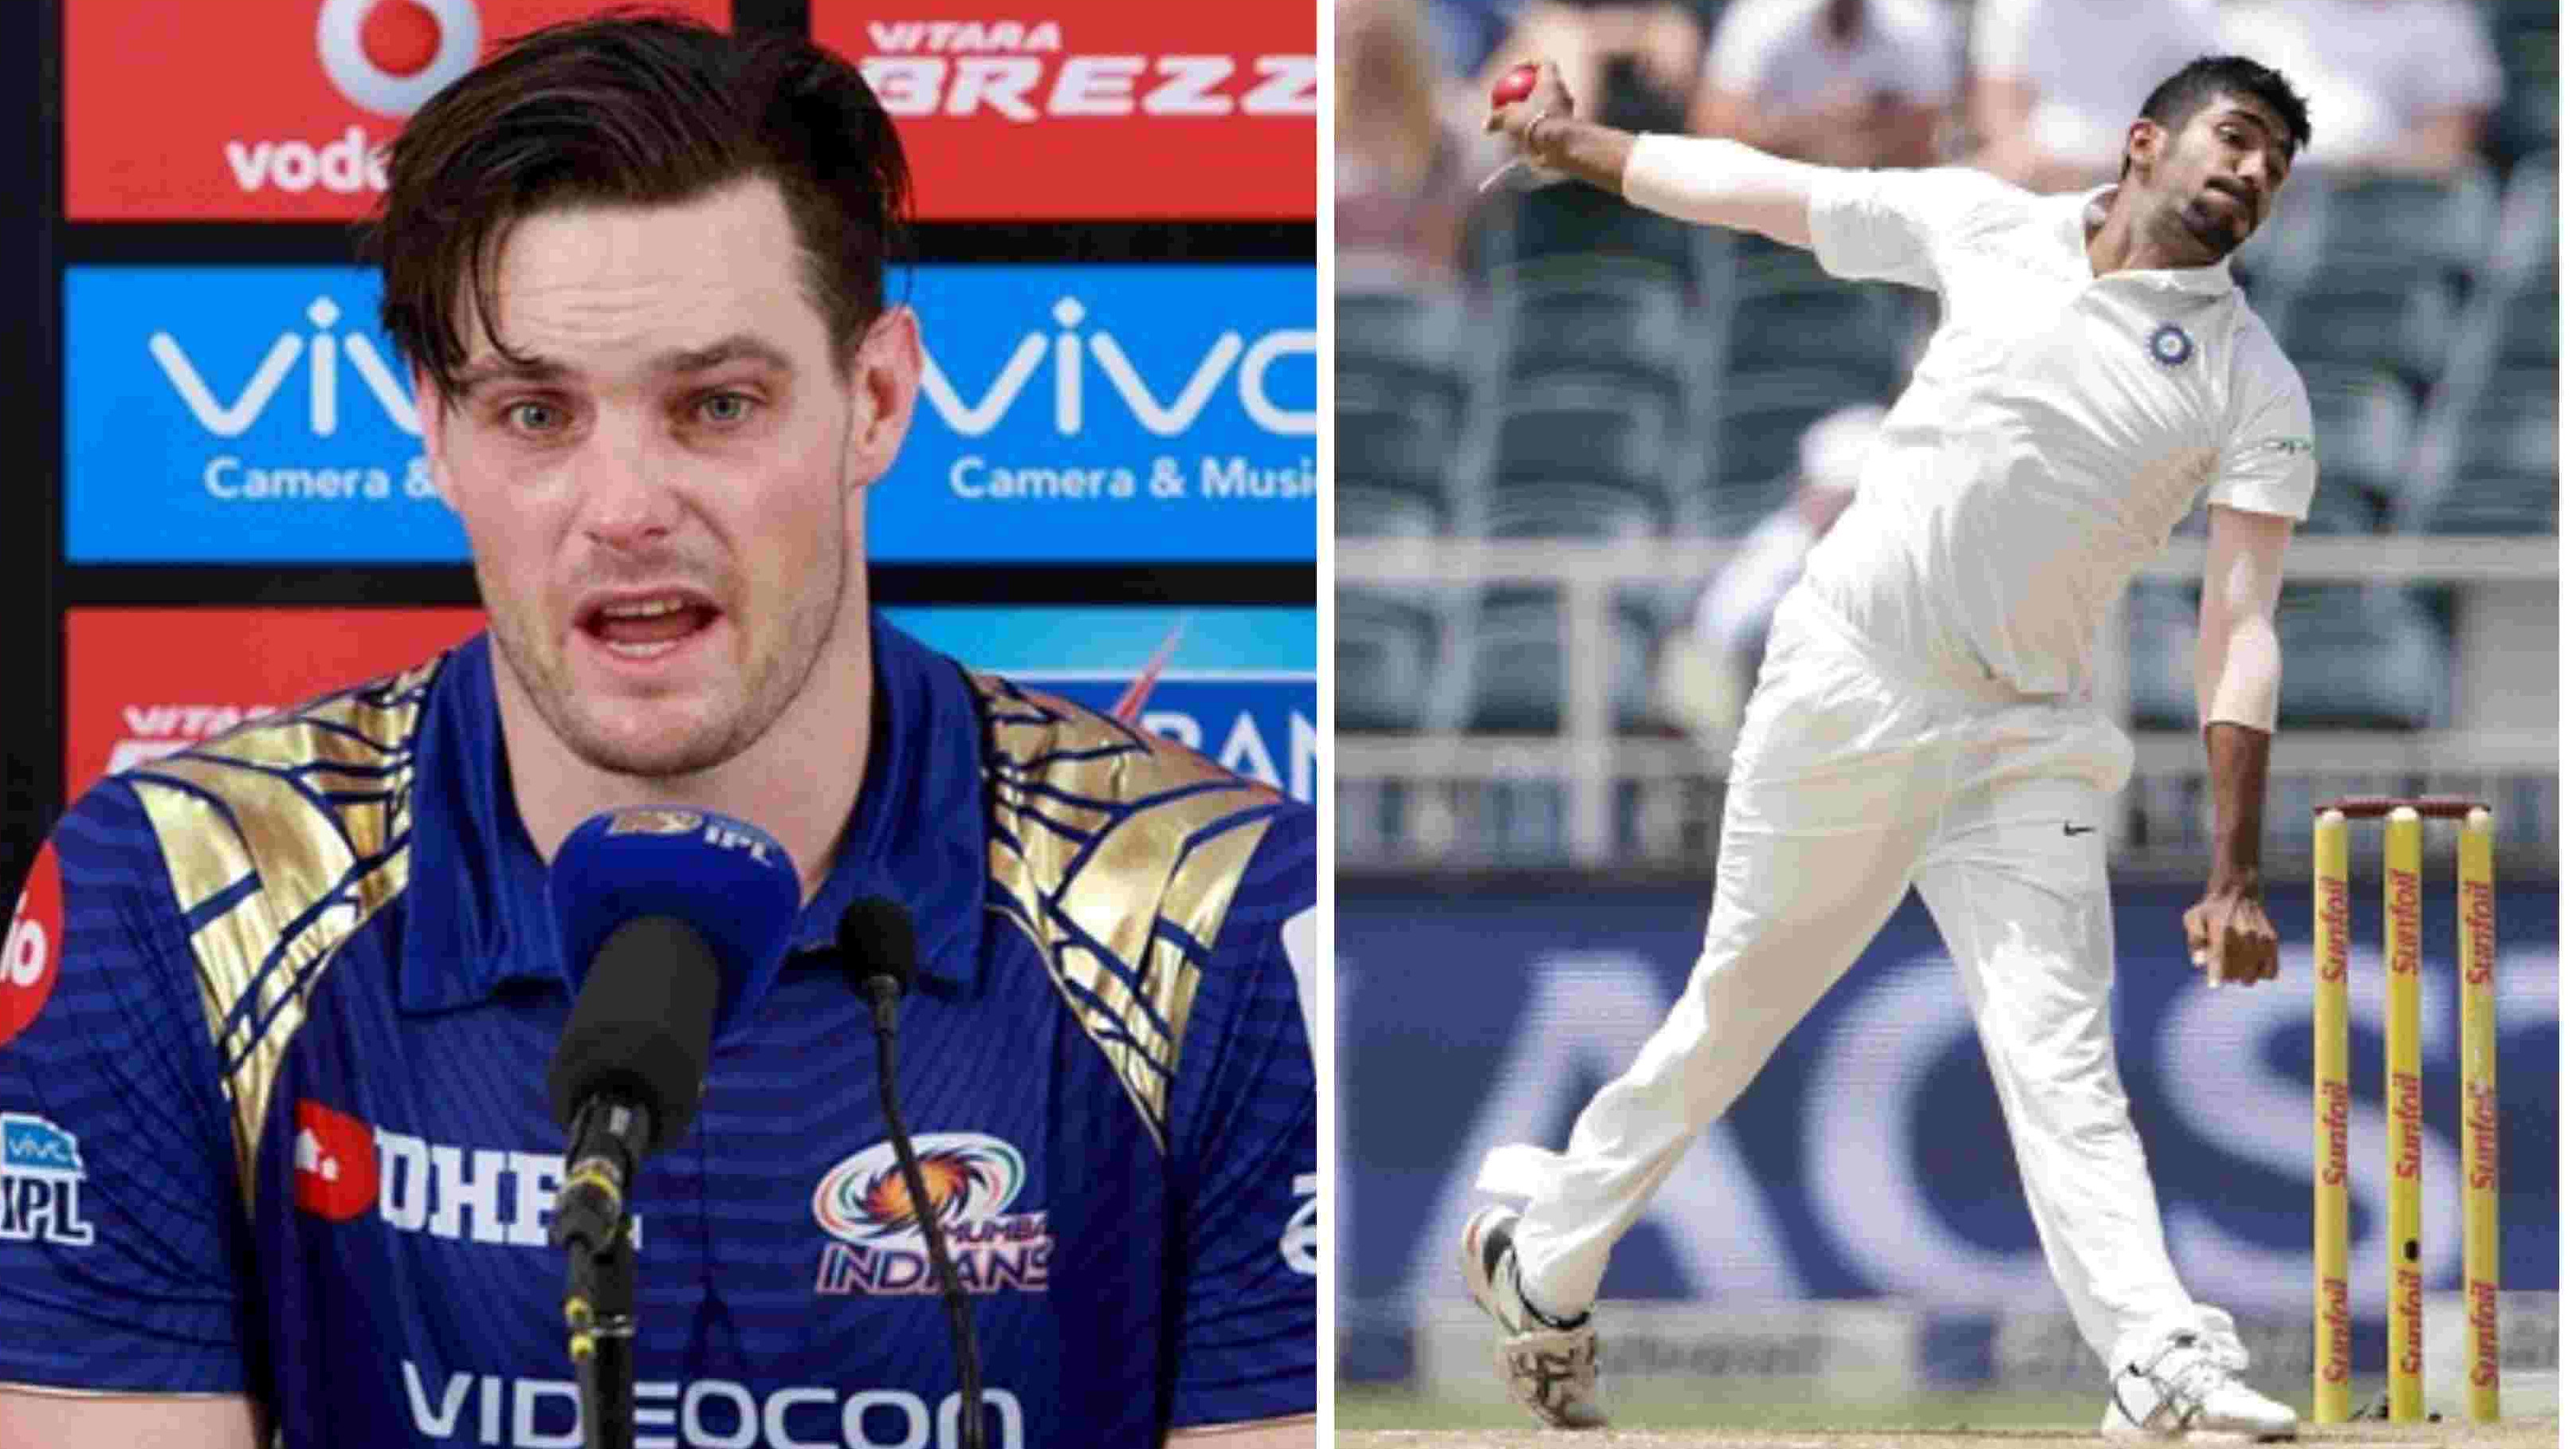 ENG v IND 2018: McClenaghan heaps praise on Bumrah, expects him to do well in Test cricket